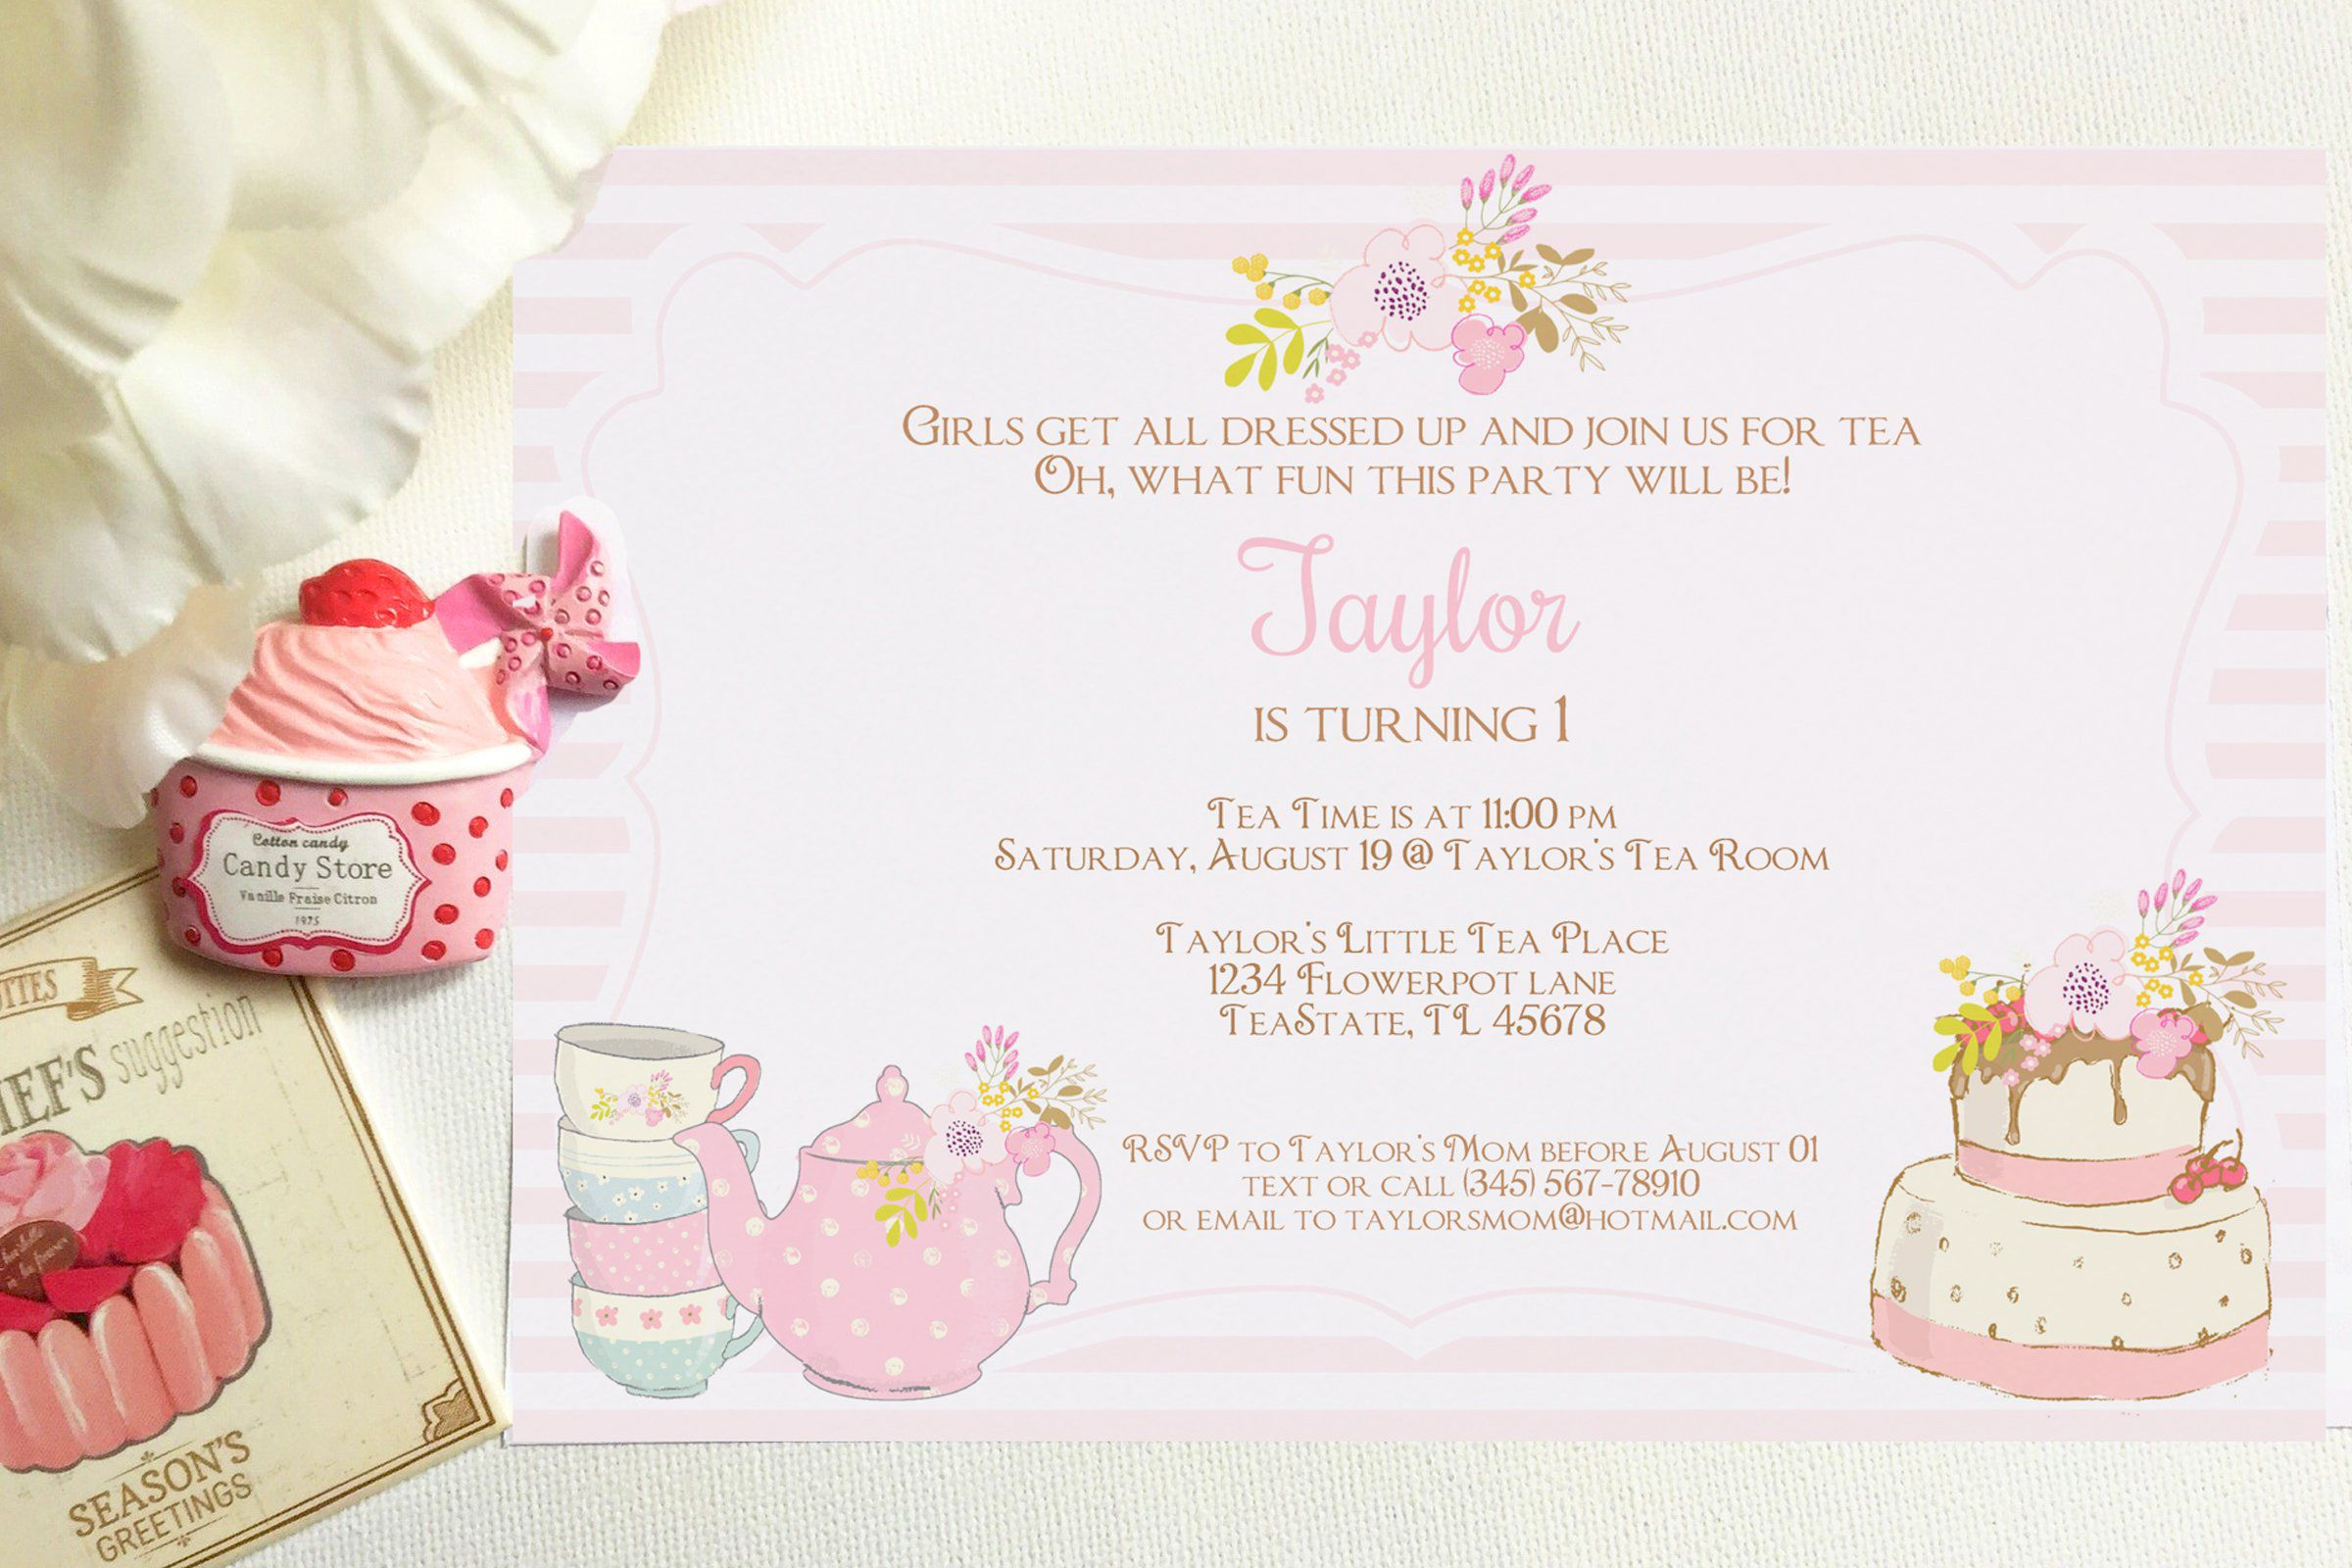 009 Unique Tea Party Invitation Template High Resolution  Templates Free Download Bridal ShowerFull